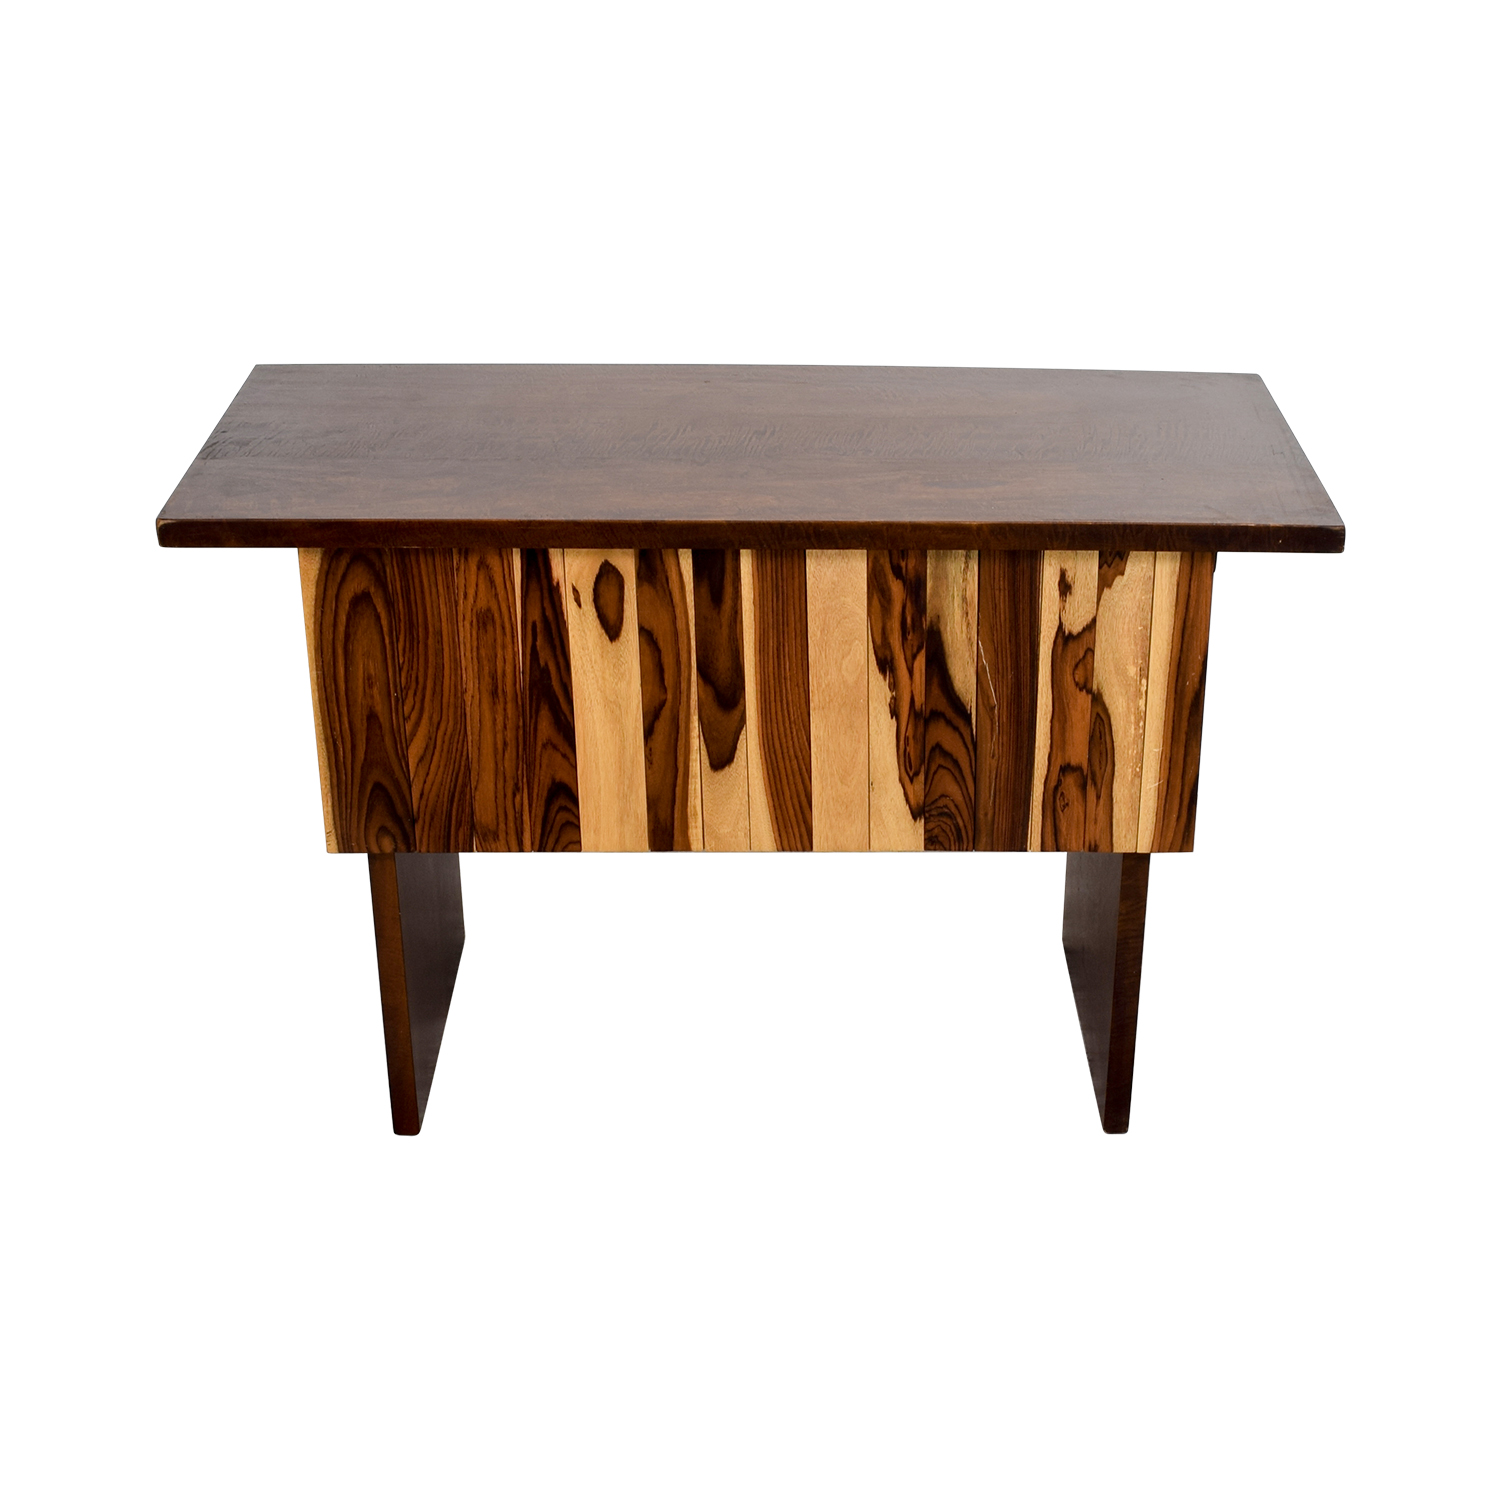 Custom Indonesian Hardwood Mango and Snokeling Wood Desk